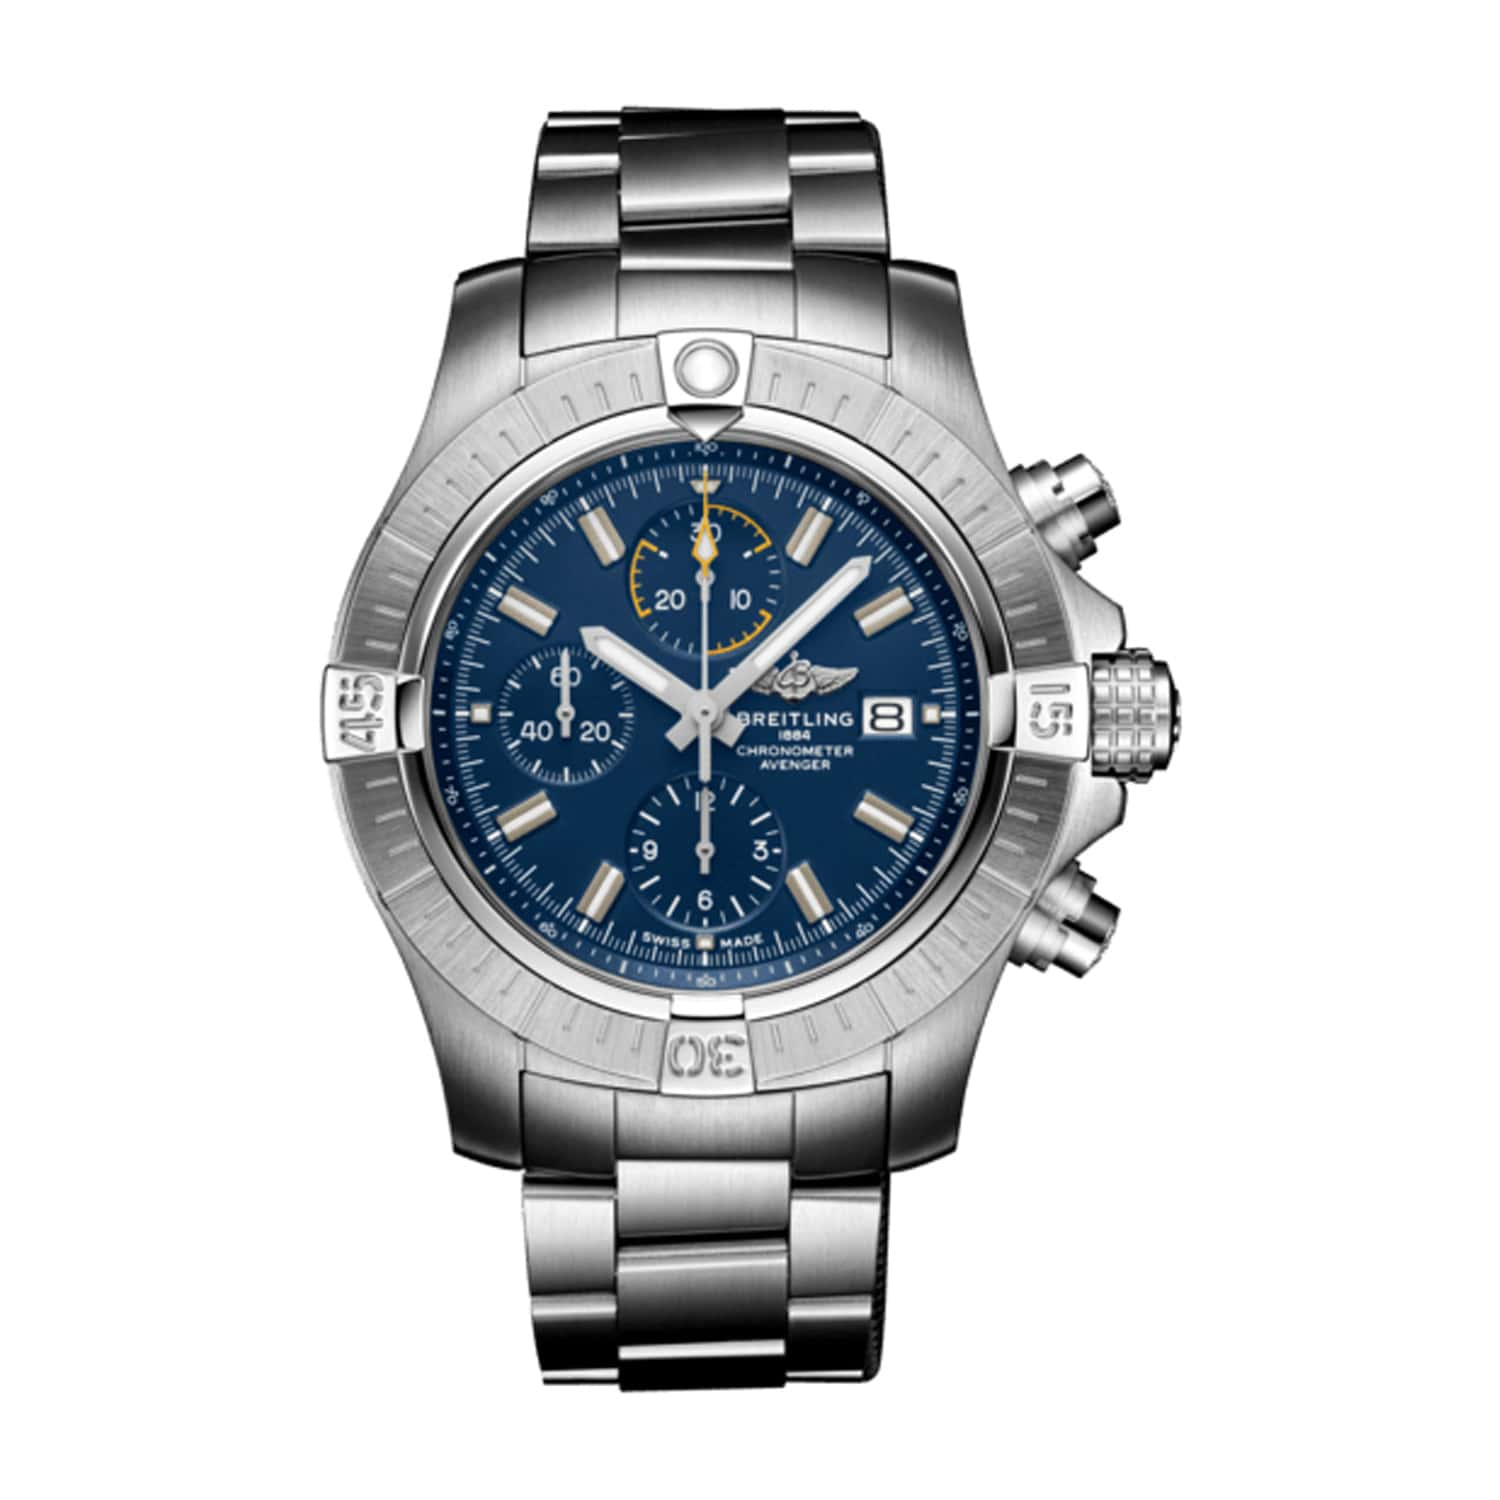 Breitling Avenger Chronograph Blue Dial & Steel 45mm Watch